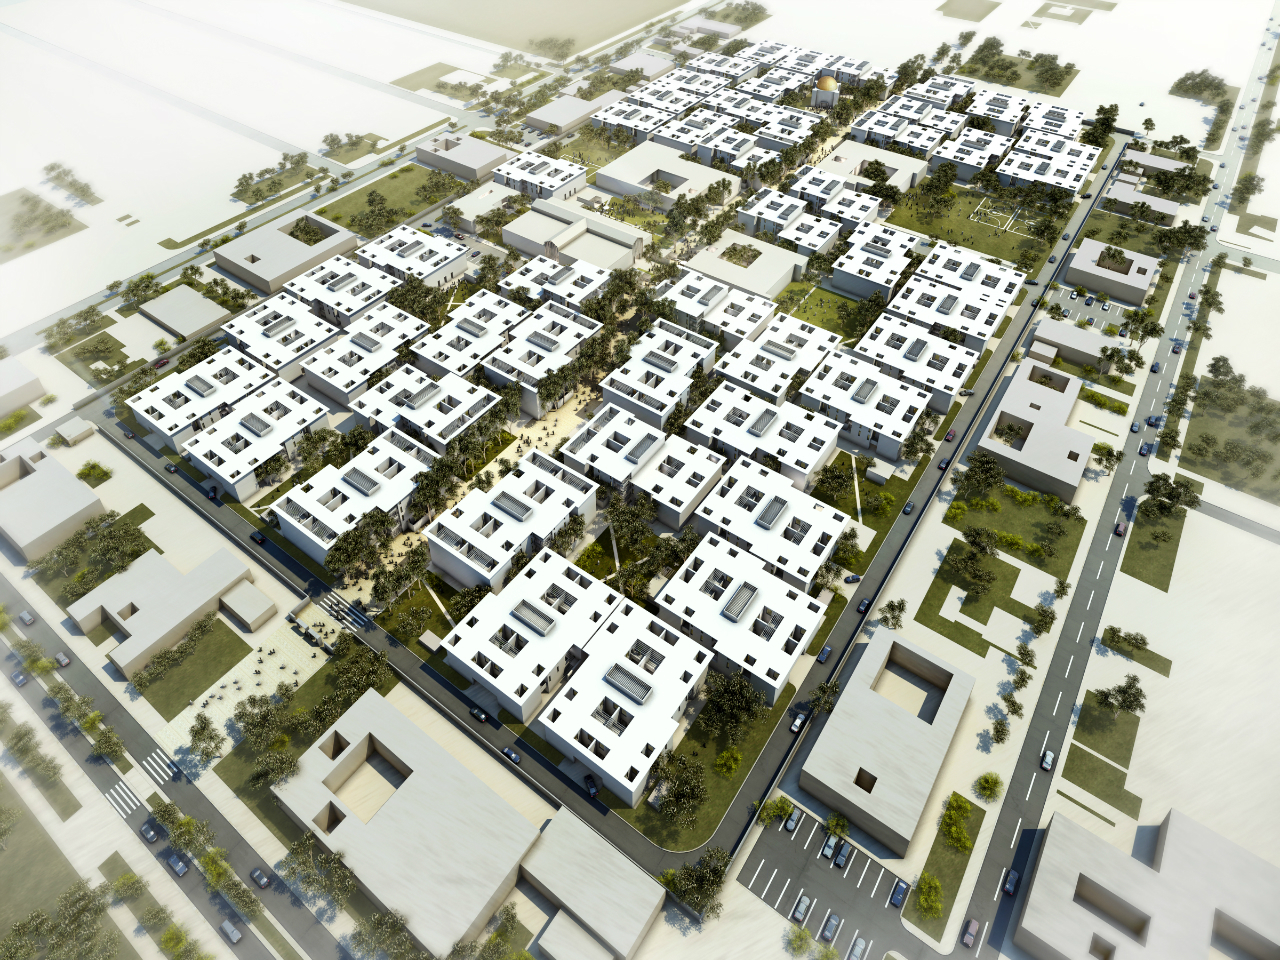 Assemblage Wins Competition For Economic Housing In Iraq